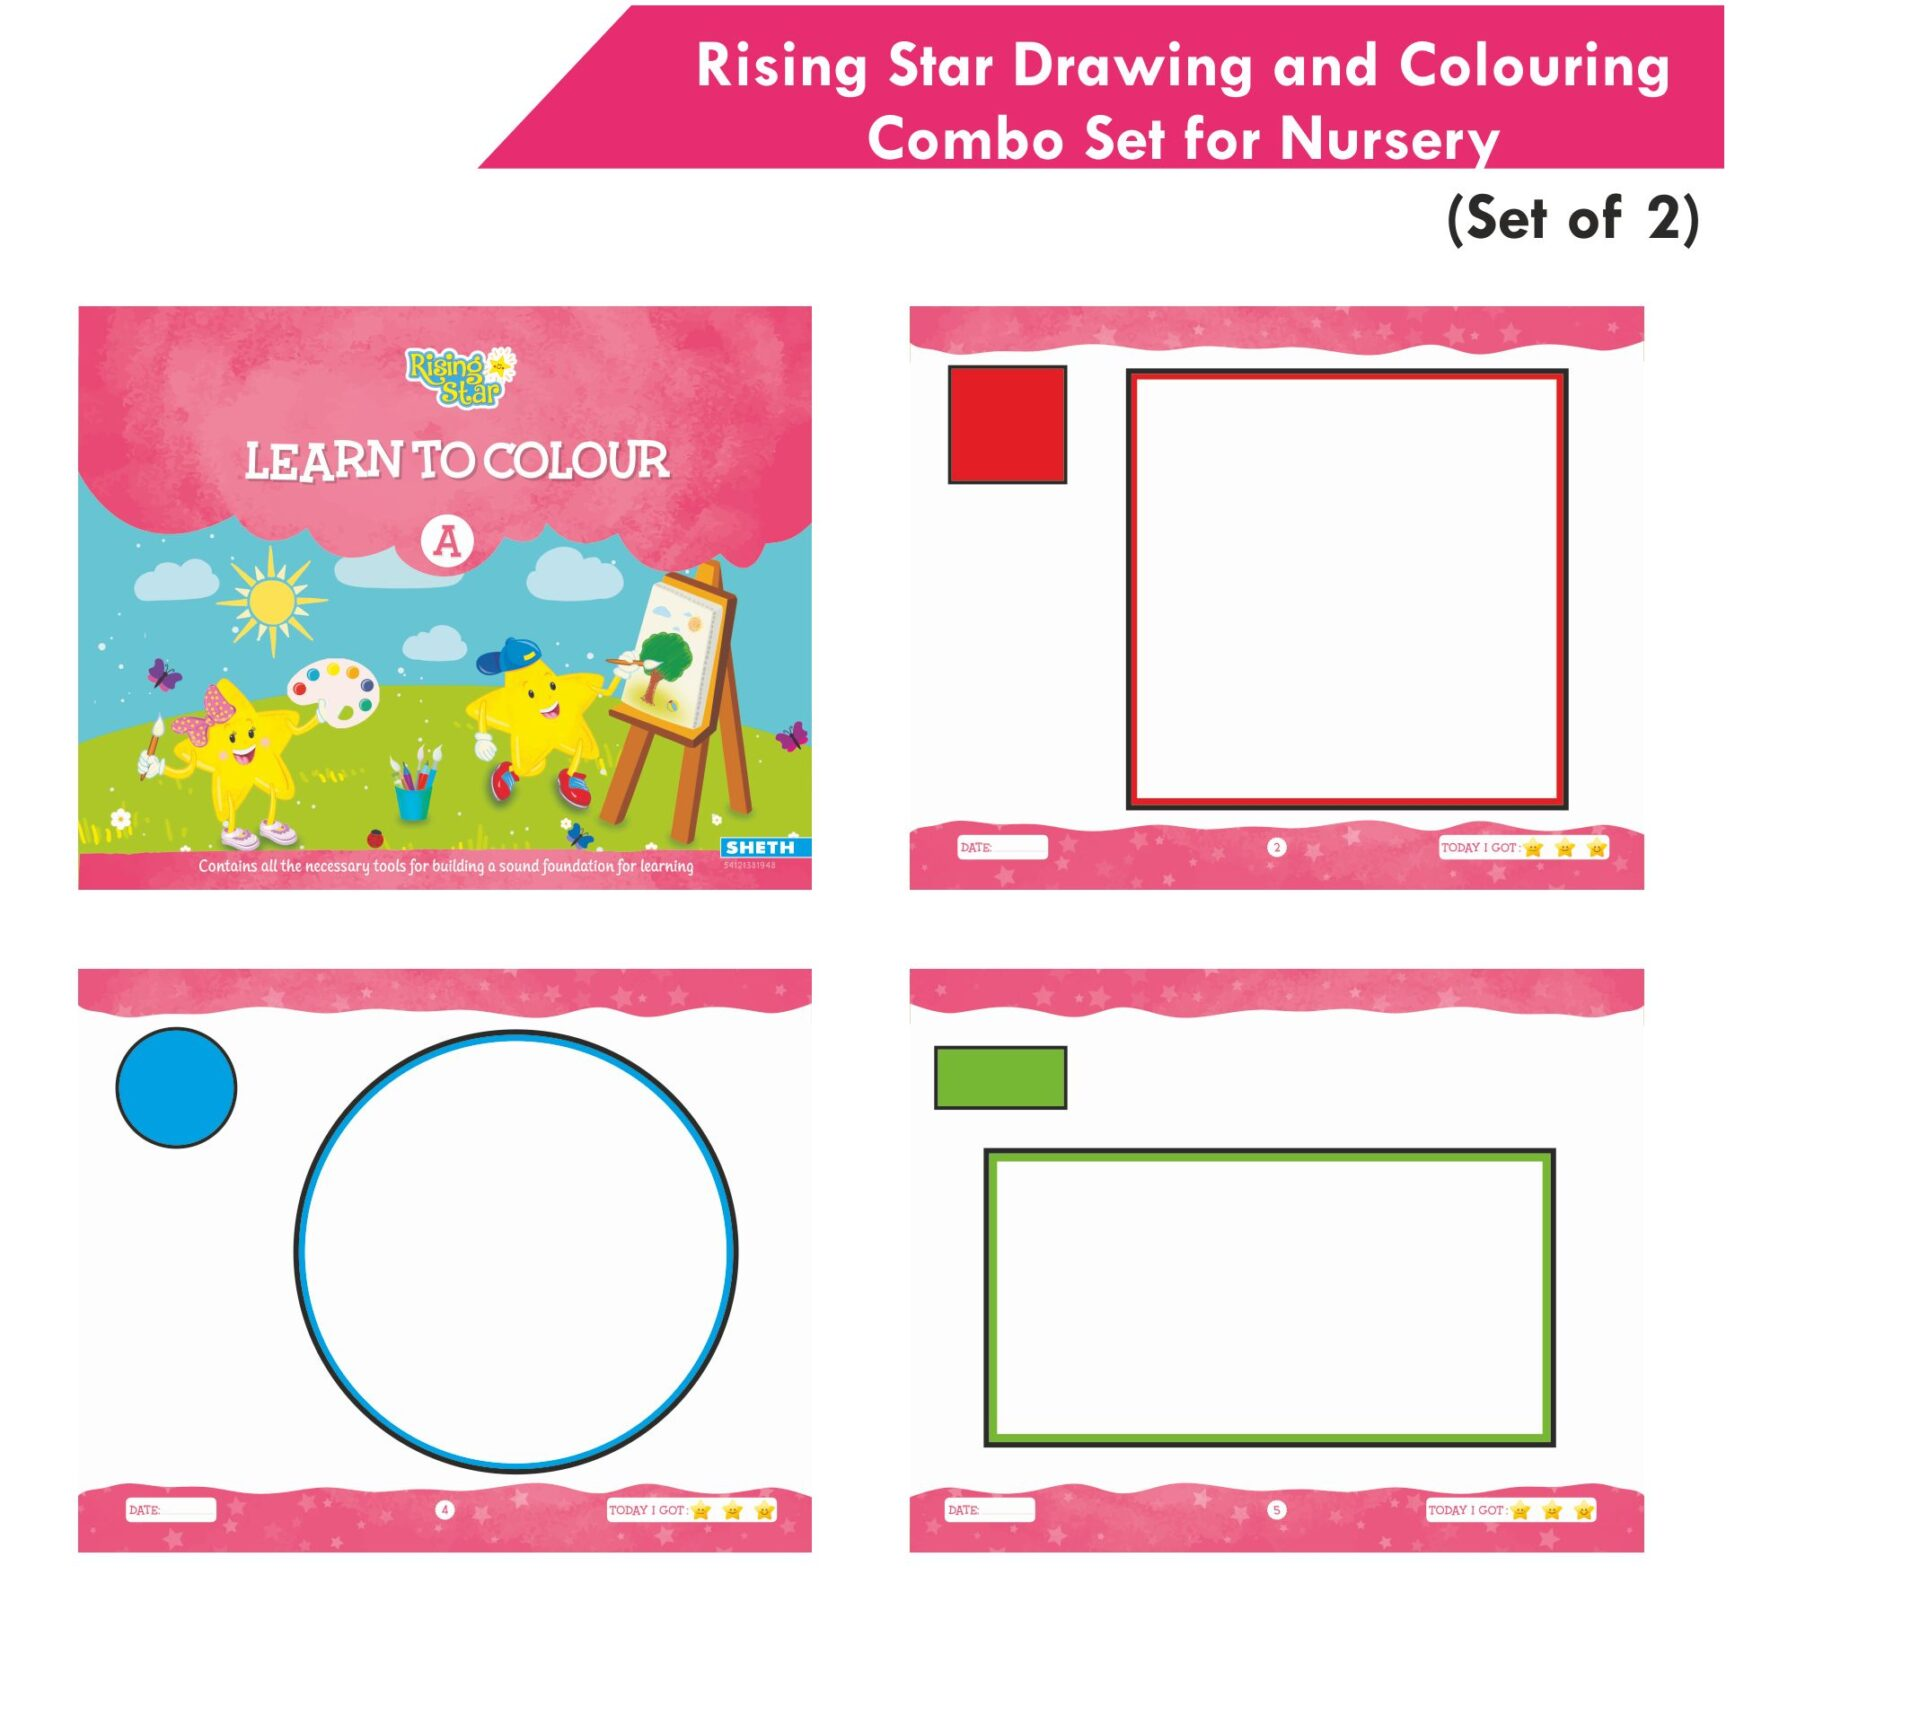 Rising Star Drawing and Colouring Combo Set for Nursery Set of 2 4